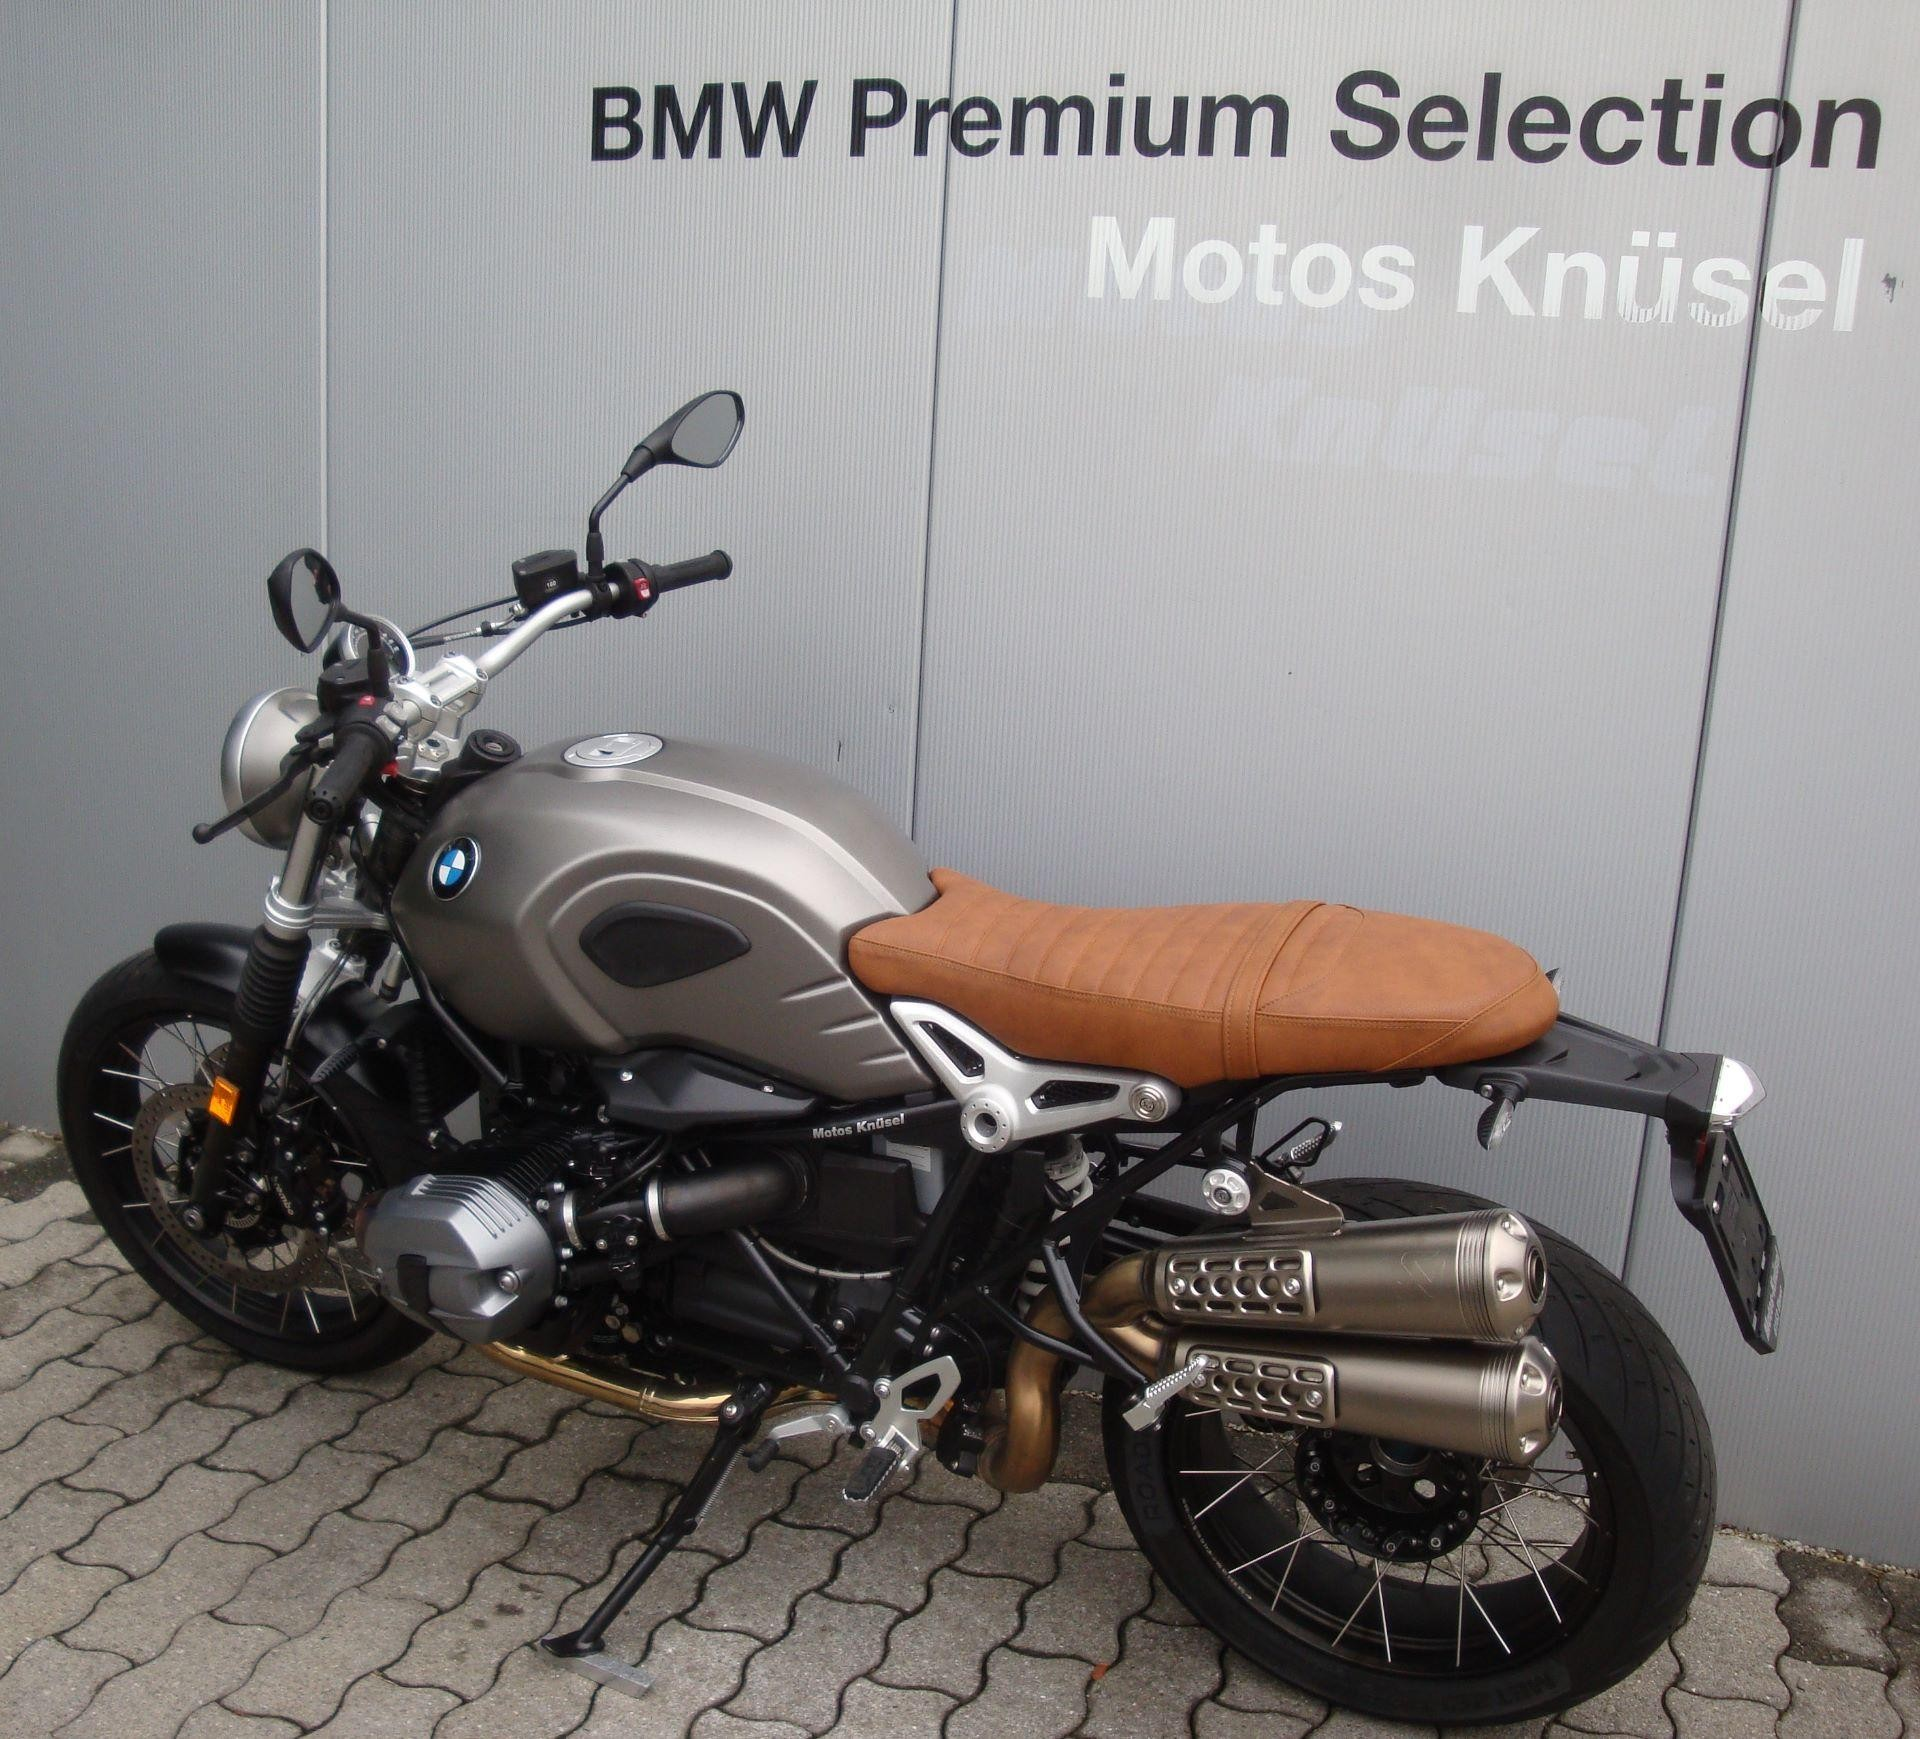 motorrad occasion kaufen bmw r nine t scrambler abs motos kn sel gmbh ebnet entlebuch. Black Bedroom Furniture Sets. Home Design Ideas